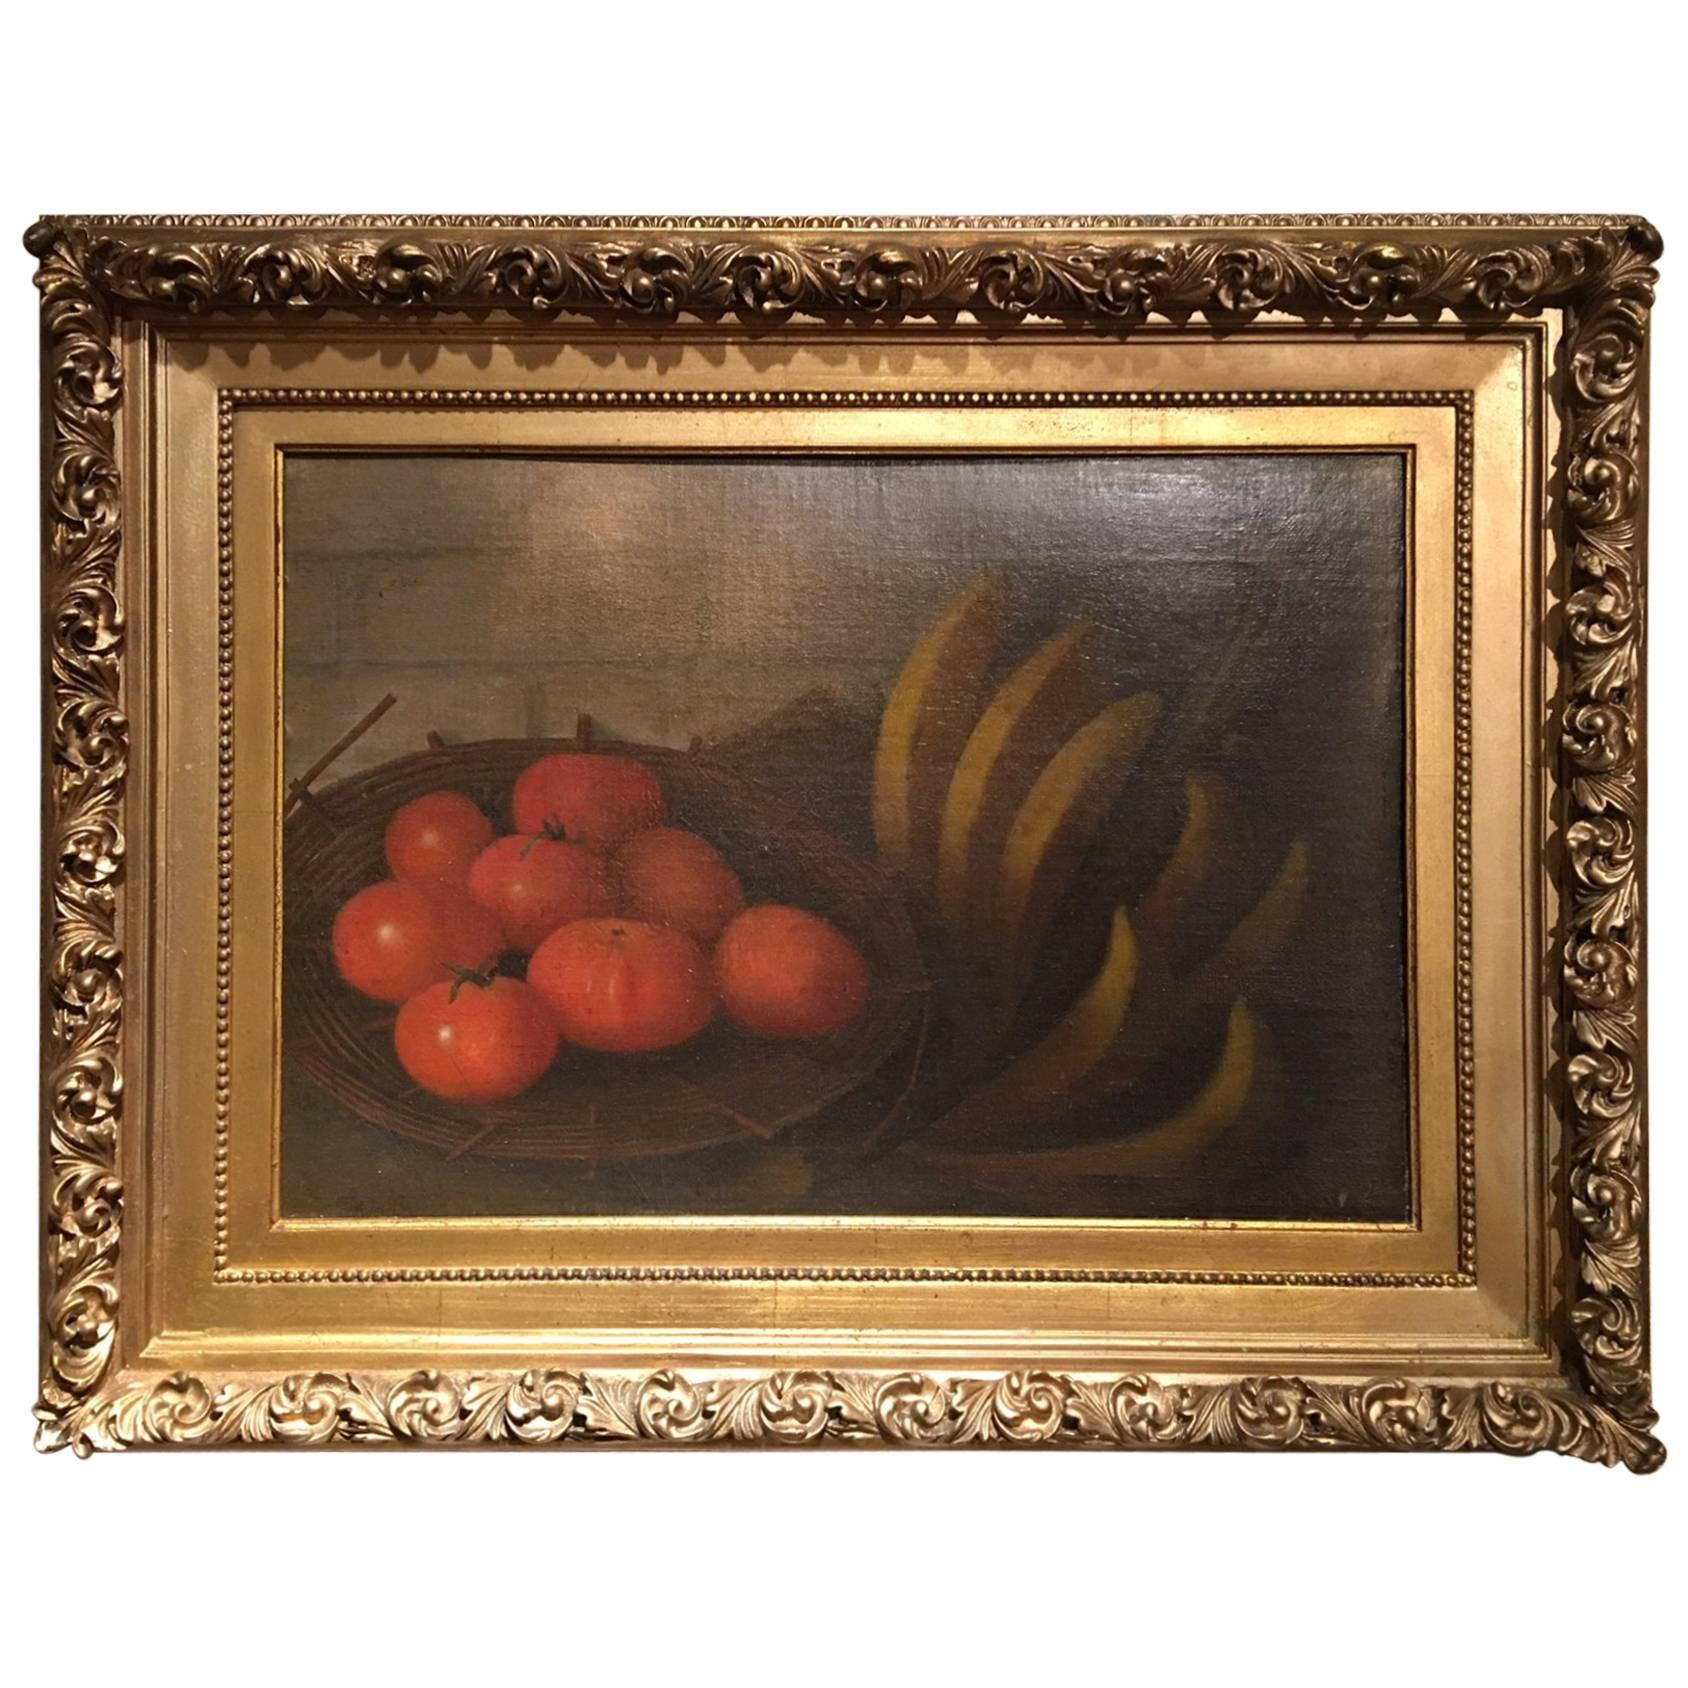 Framed Oil on Canvas, Still Life with Tomatoes, Signed W.G.S. Boursse